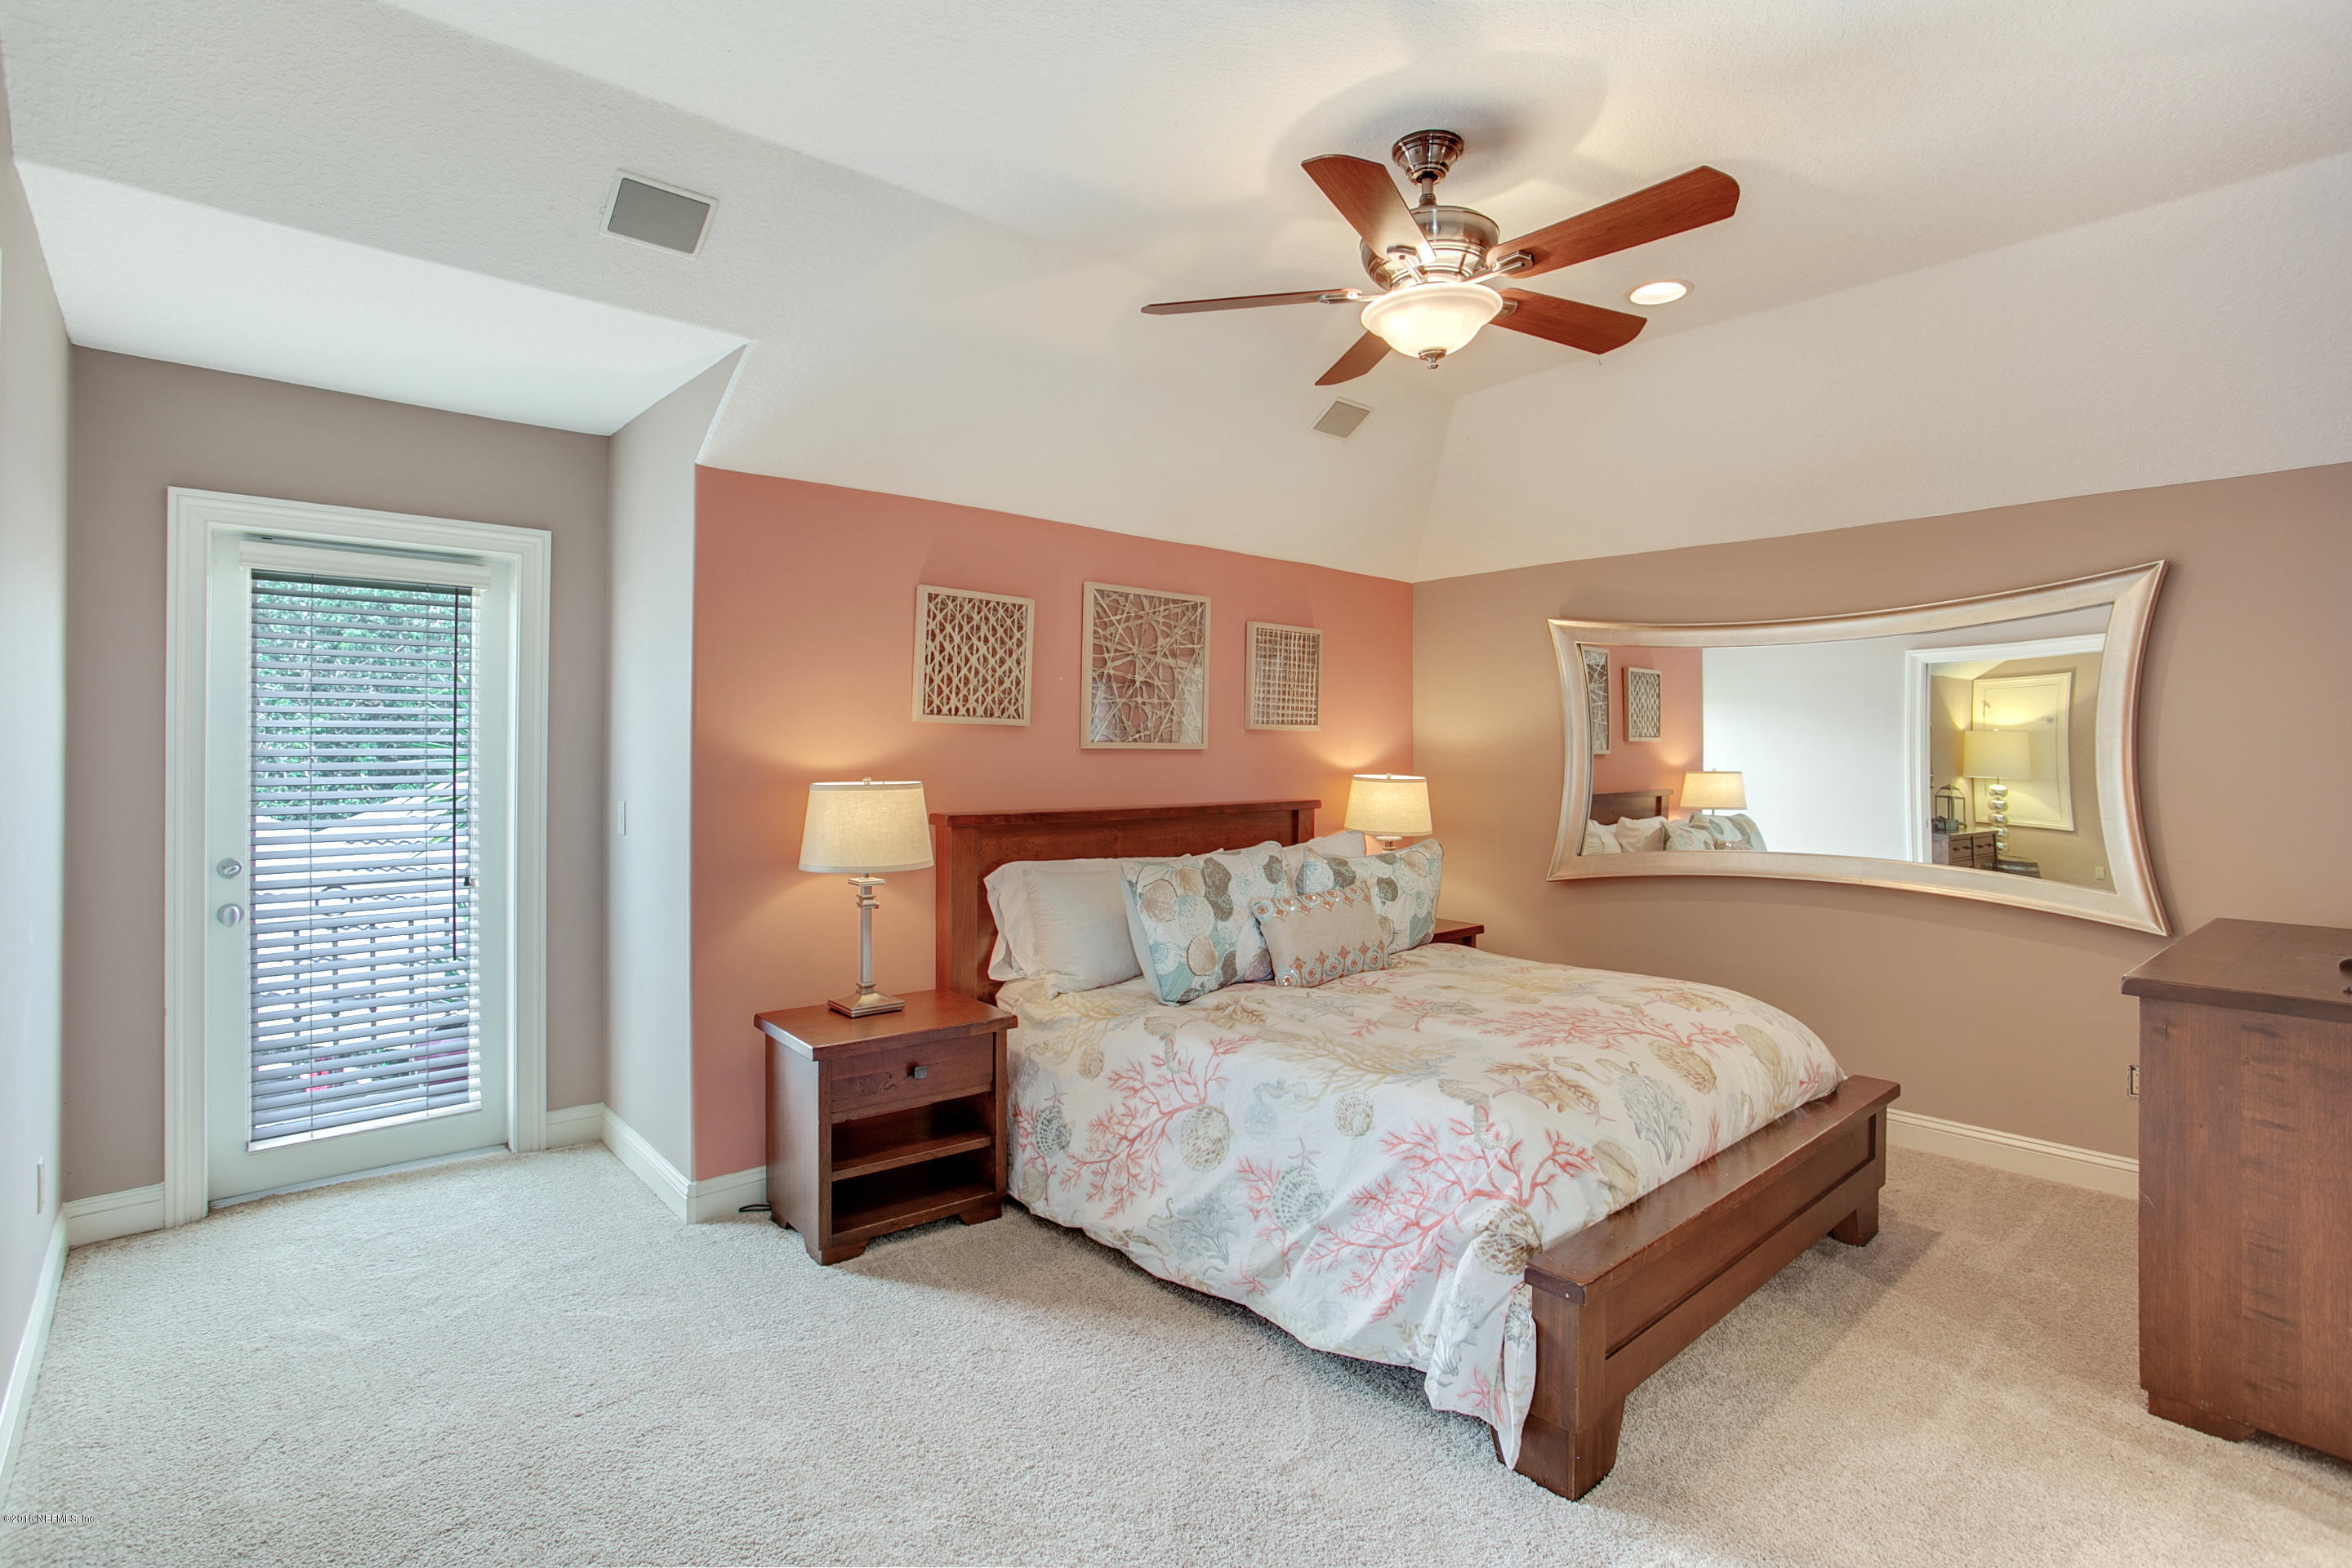 1228 WINDSOR HARBOR, JACKSONVILLE, FLORIDA 32225, 7 Bedrooms Bedrooms, ,8 BathroomsBathrooms,Residential - single family,For sale,WINDSOR HARBOR,955393